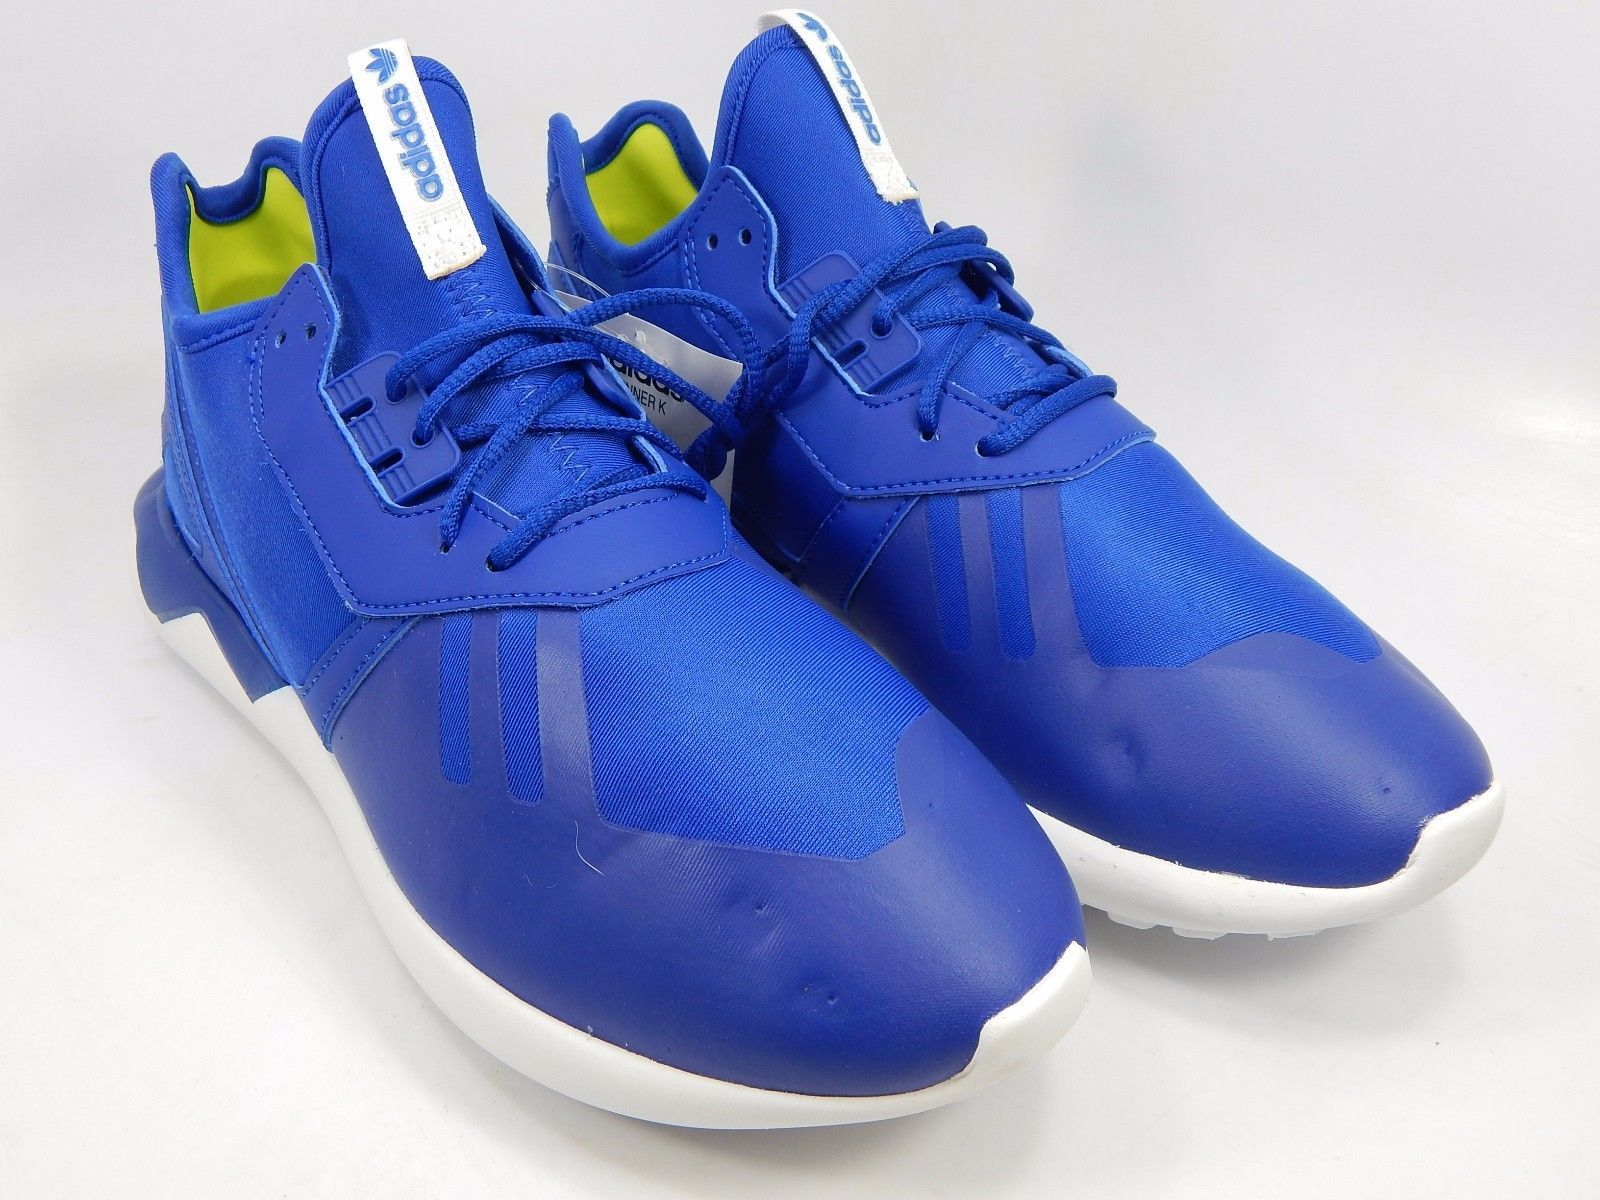 Adidas Tubular Runner Boy's Youth Running Shoes Size US 5 Y EU 37 1/3 B23658